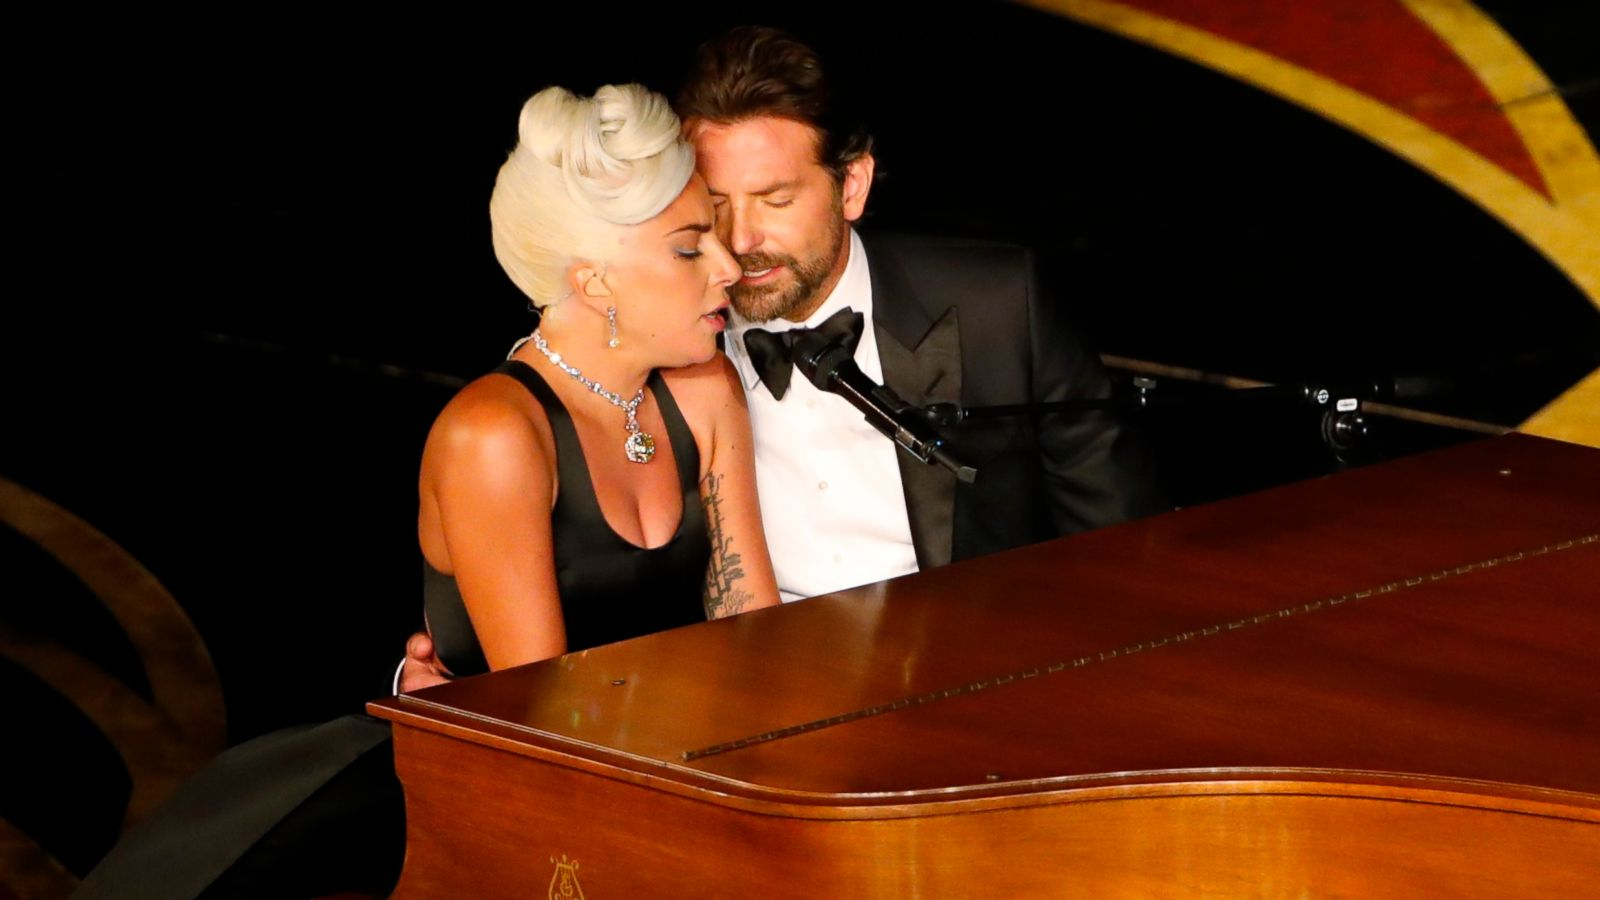 Oscars 2019: Lady Gaga on performing 'Shallow' with 'A Star